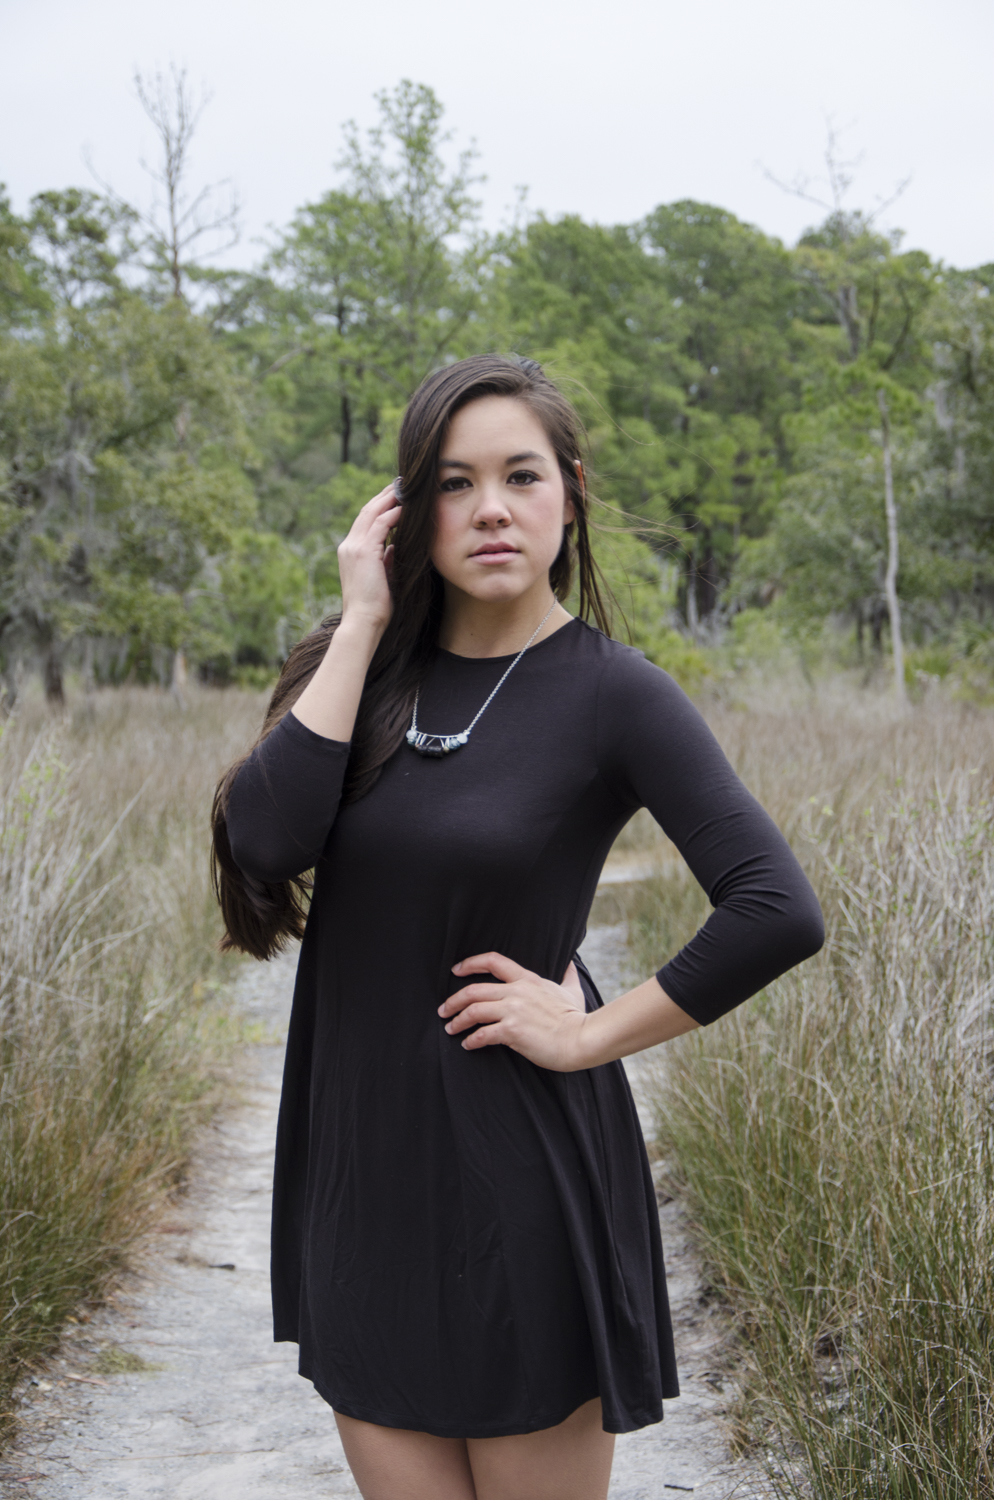 Jewelry: Pie Slices Model: Kayley Jacobs  Location: Skidaway State Park - Savannah, GA